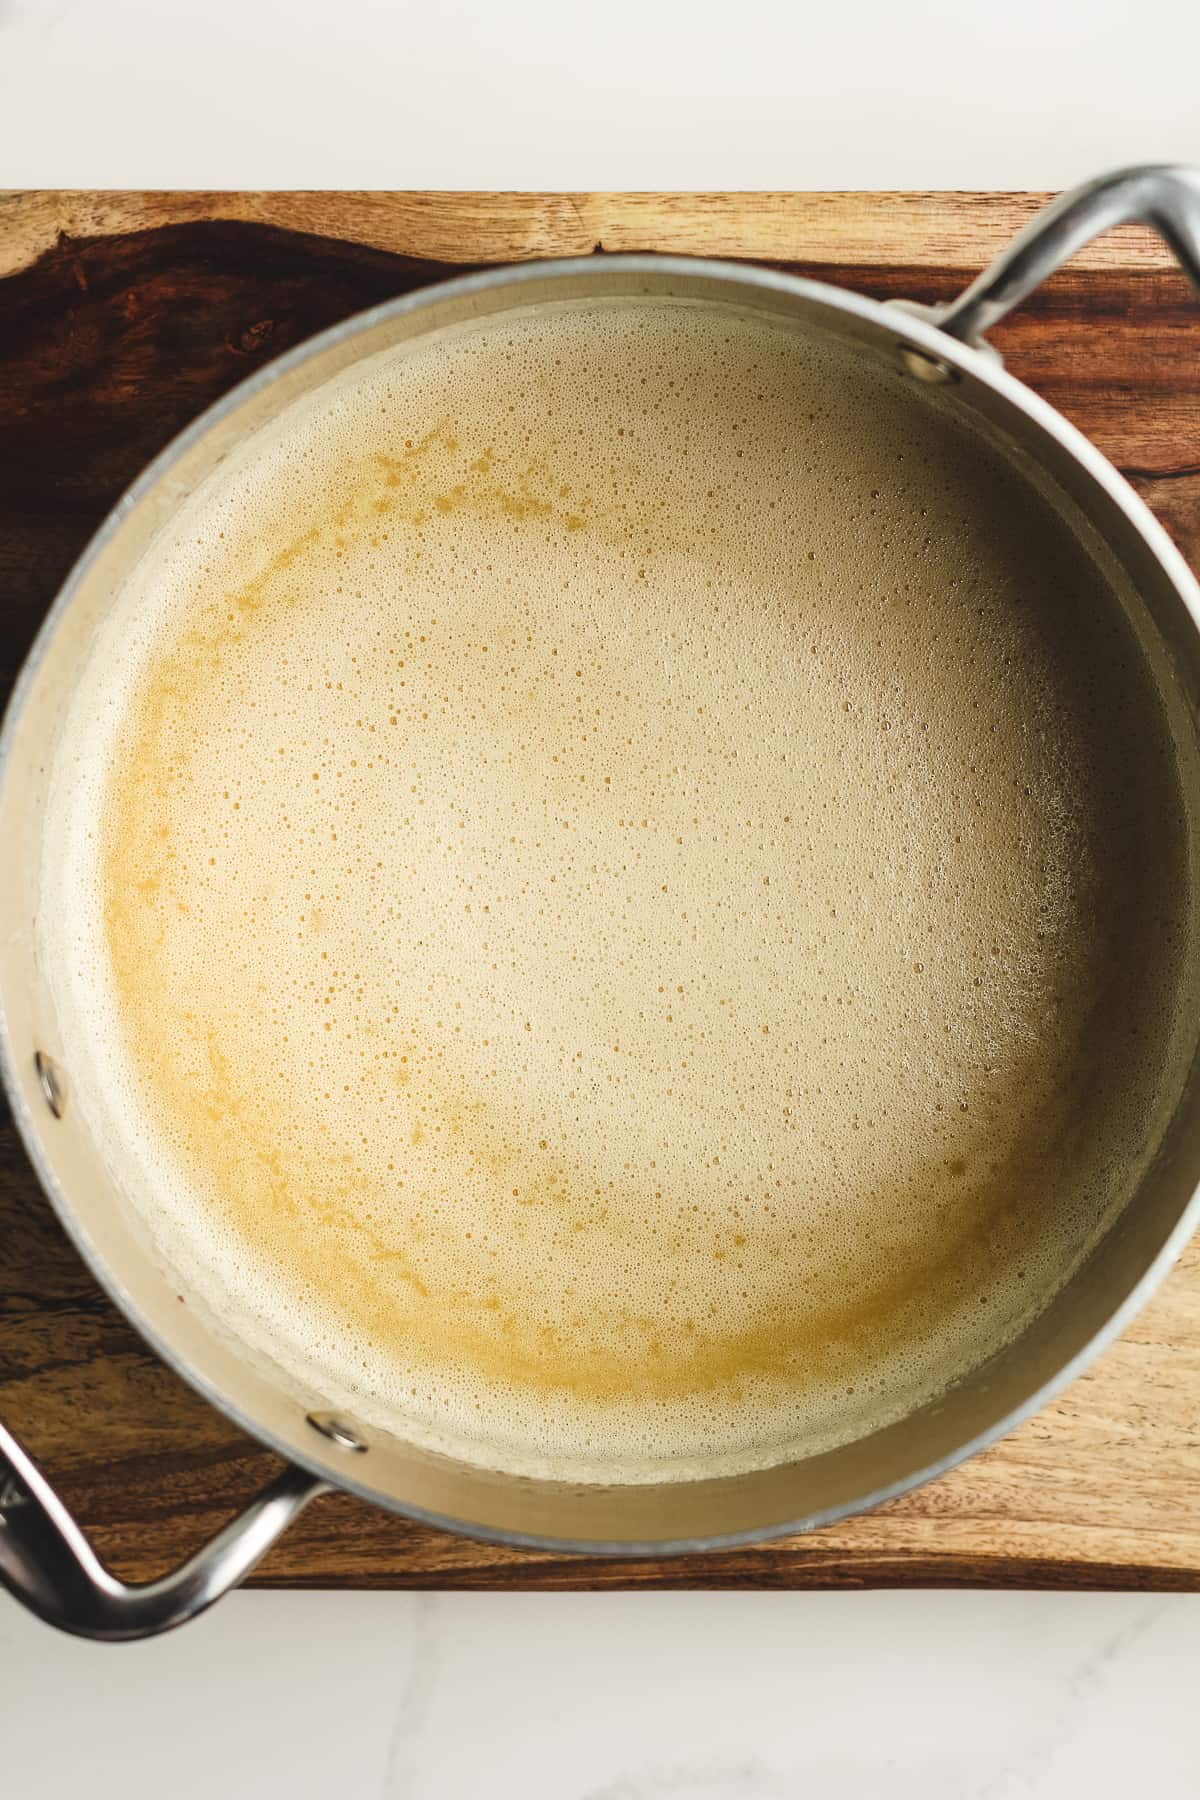 A pan of the browned butter with the tempered eggs.